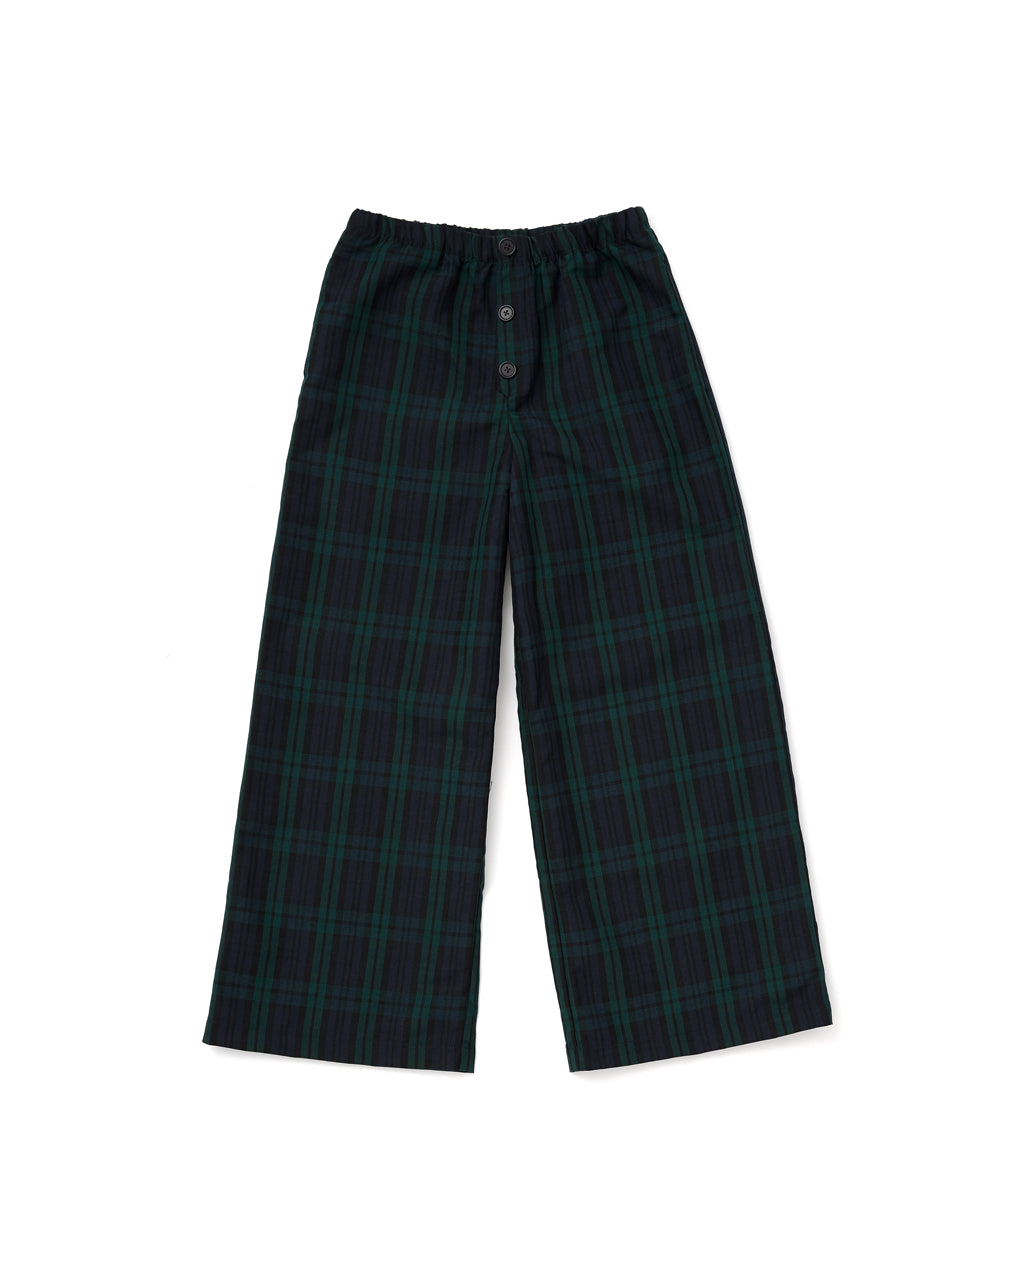 flat view of wide leg navy and green plaid pants